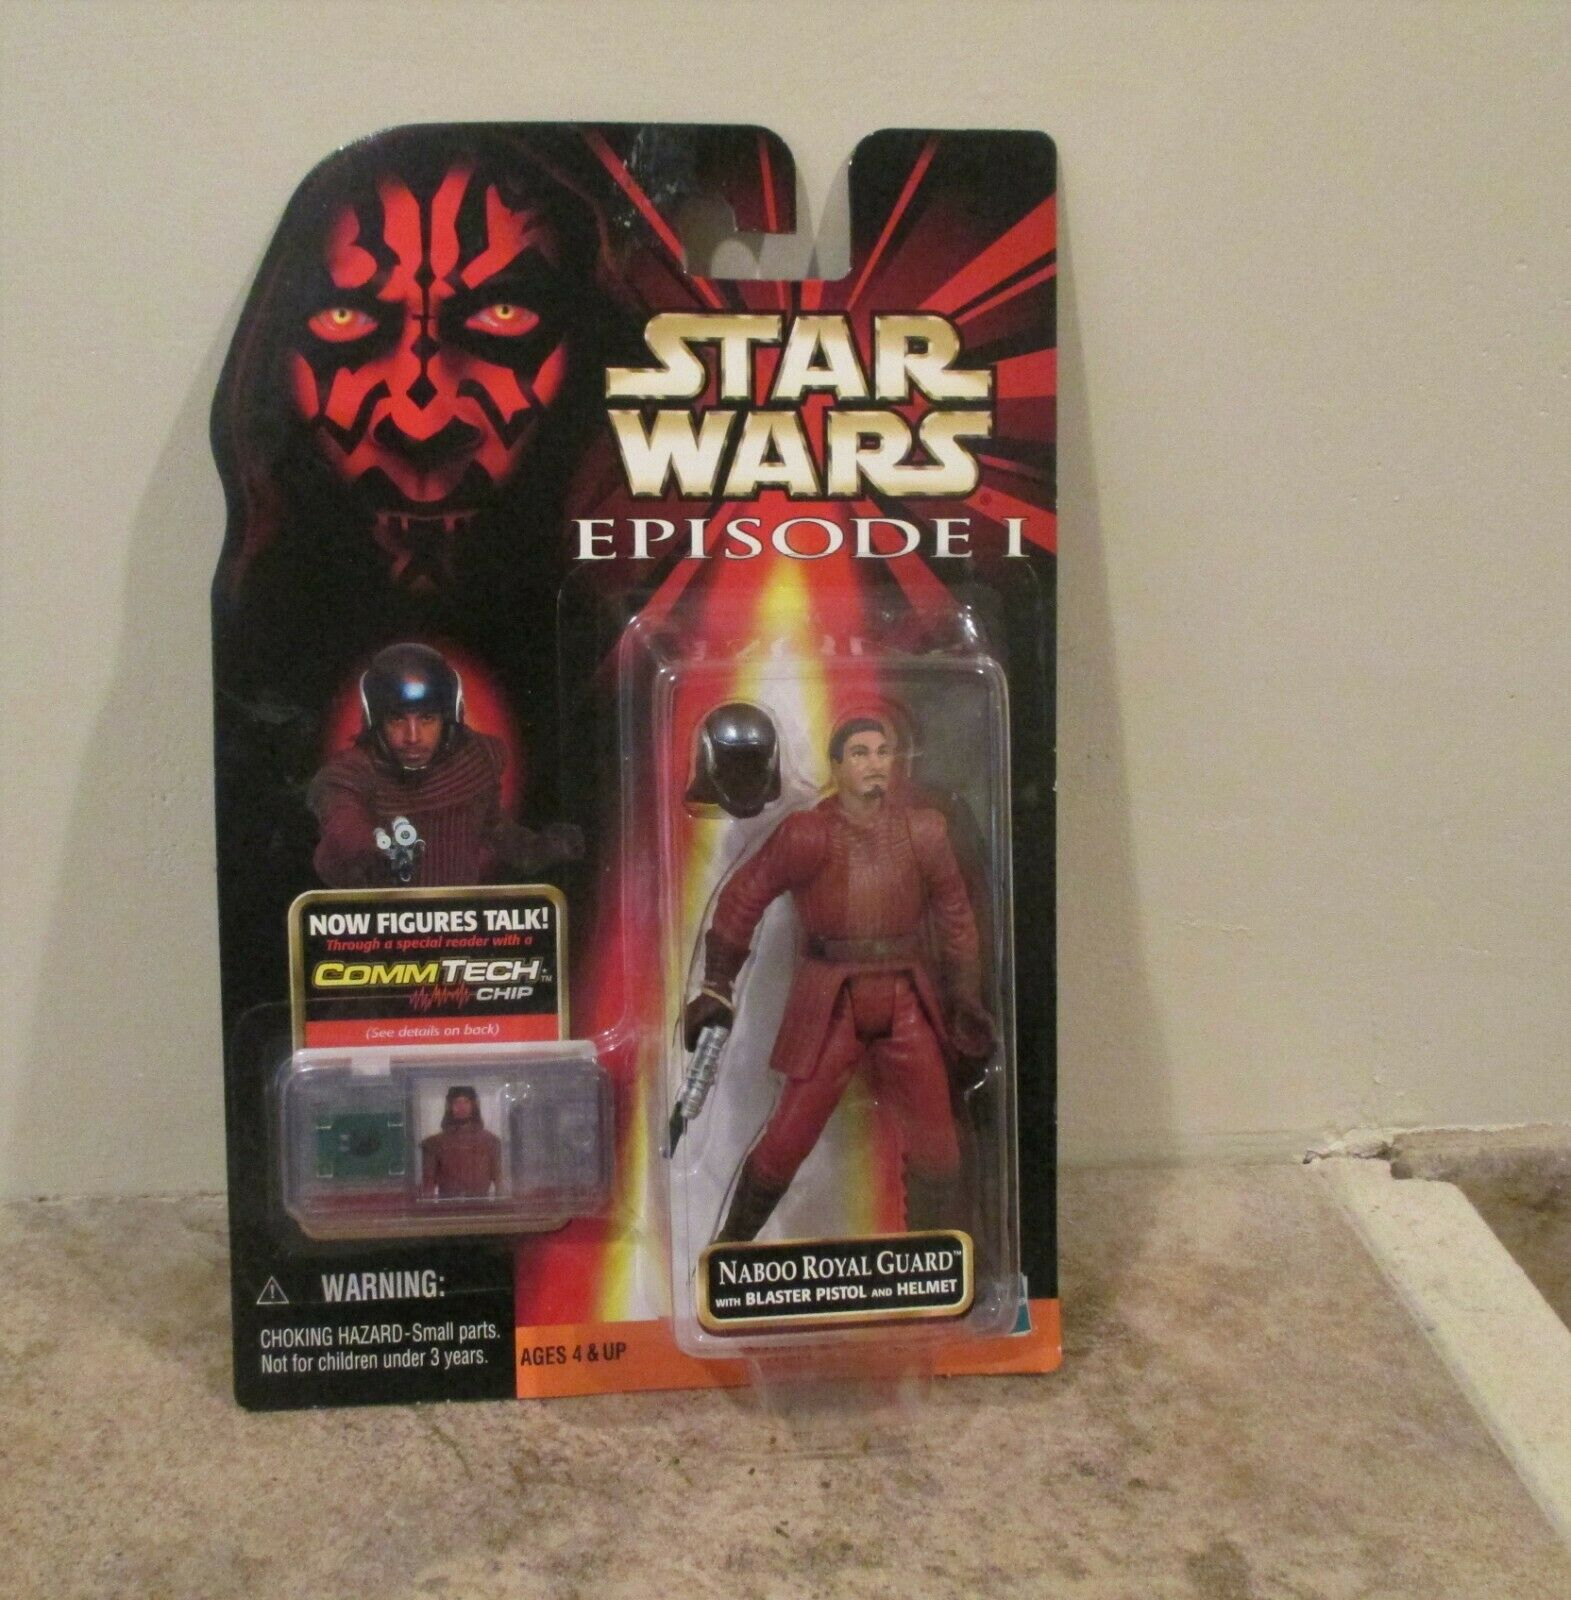 '99 Star Wars Episode 1 Naboo Royal Guard TPM Commtech Hasbro Lucas Films